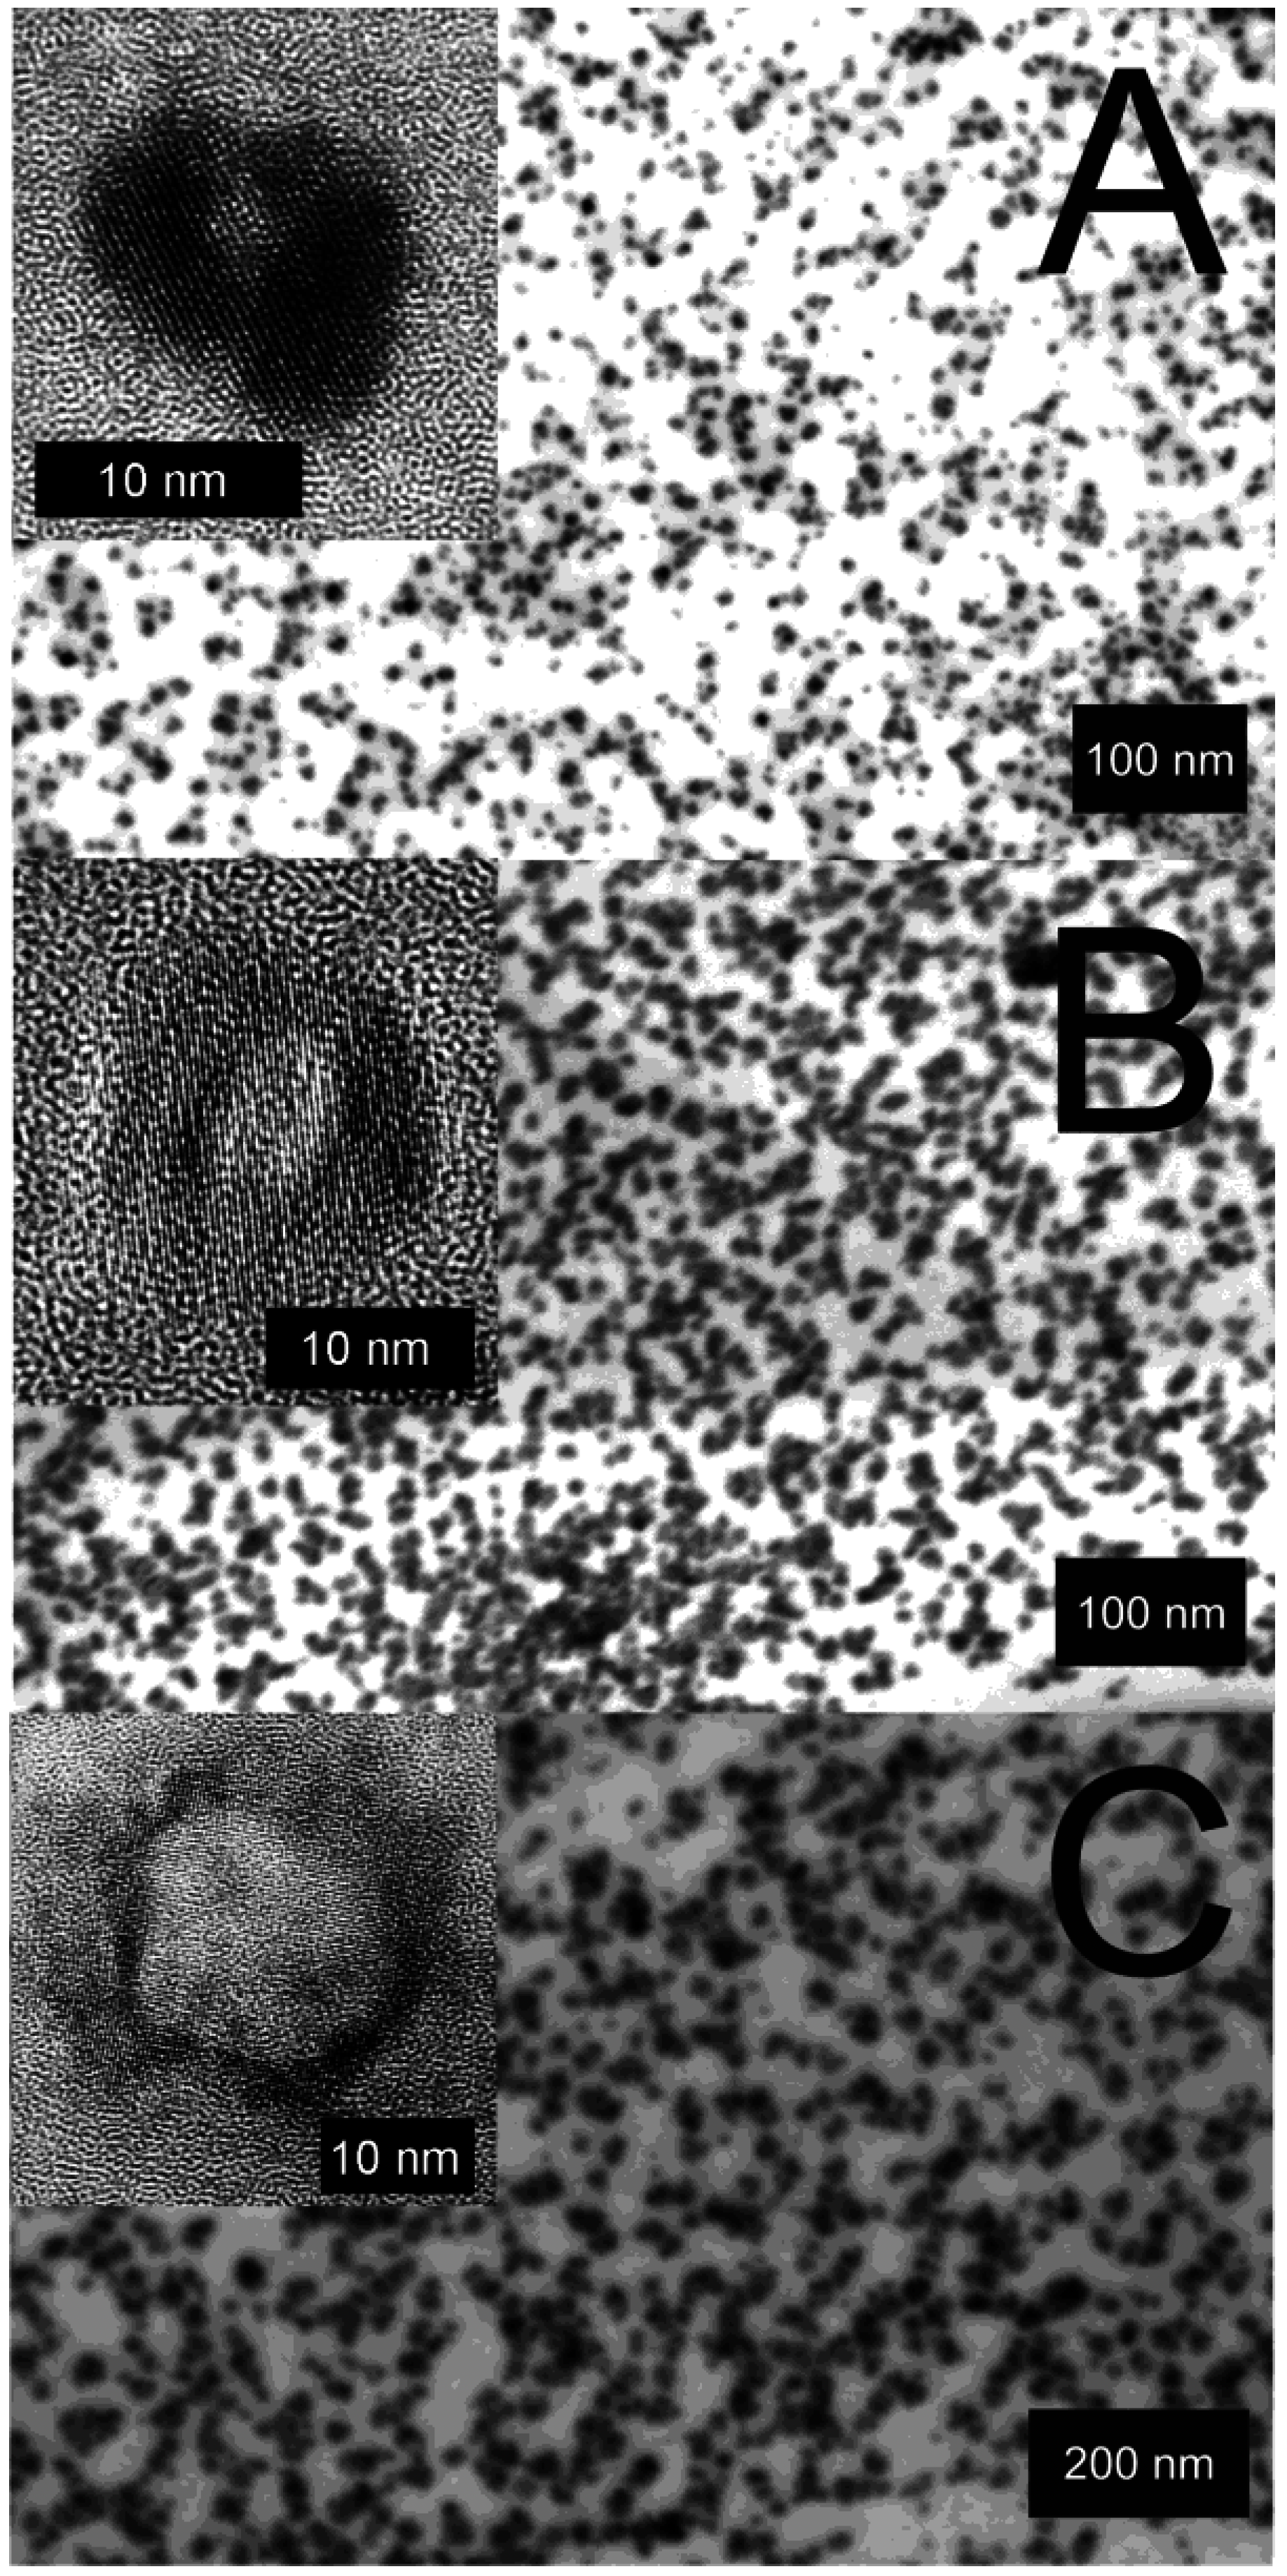 microemulsion review article pdf